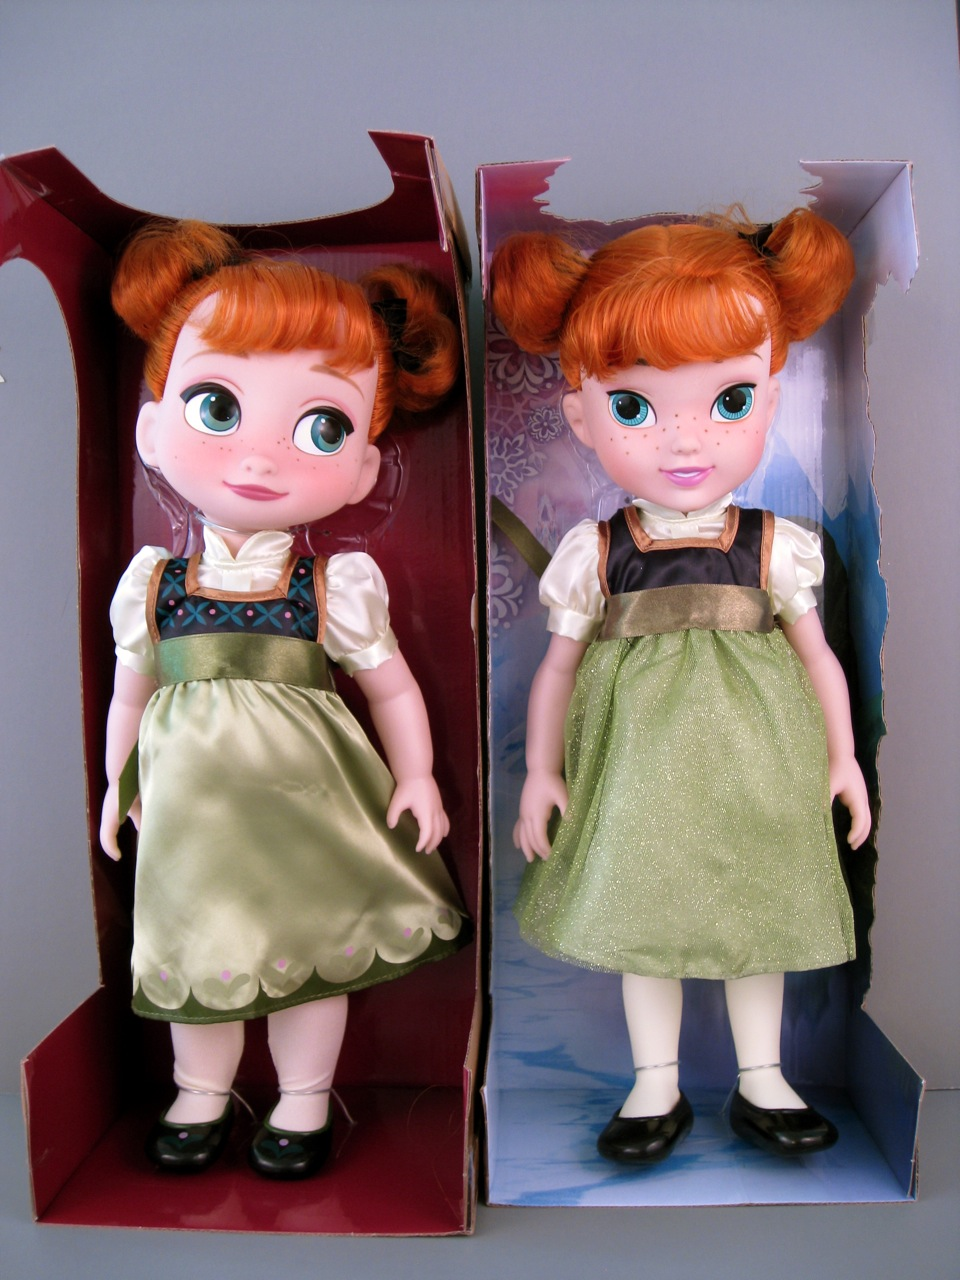 Quot Frozen Quot Dolls From J C Penney And The Disney Store A